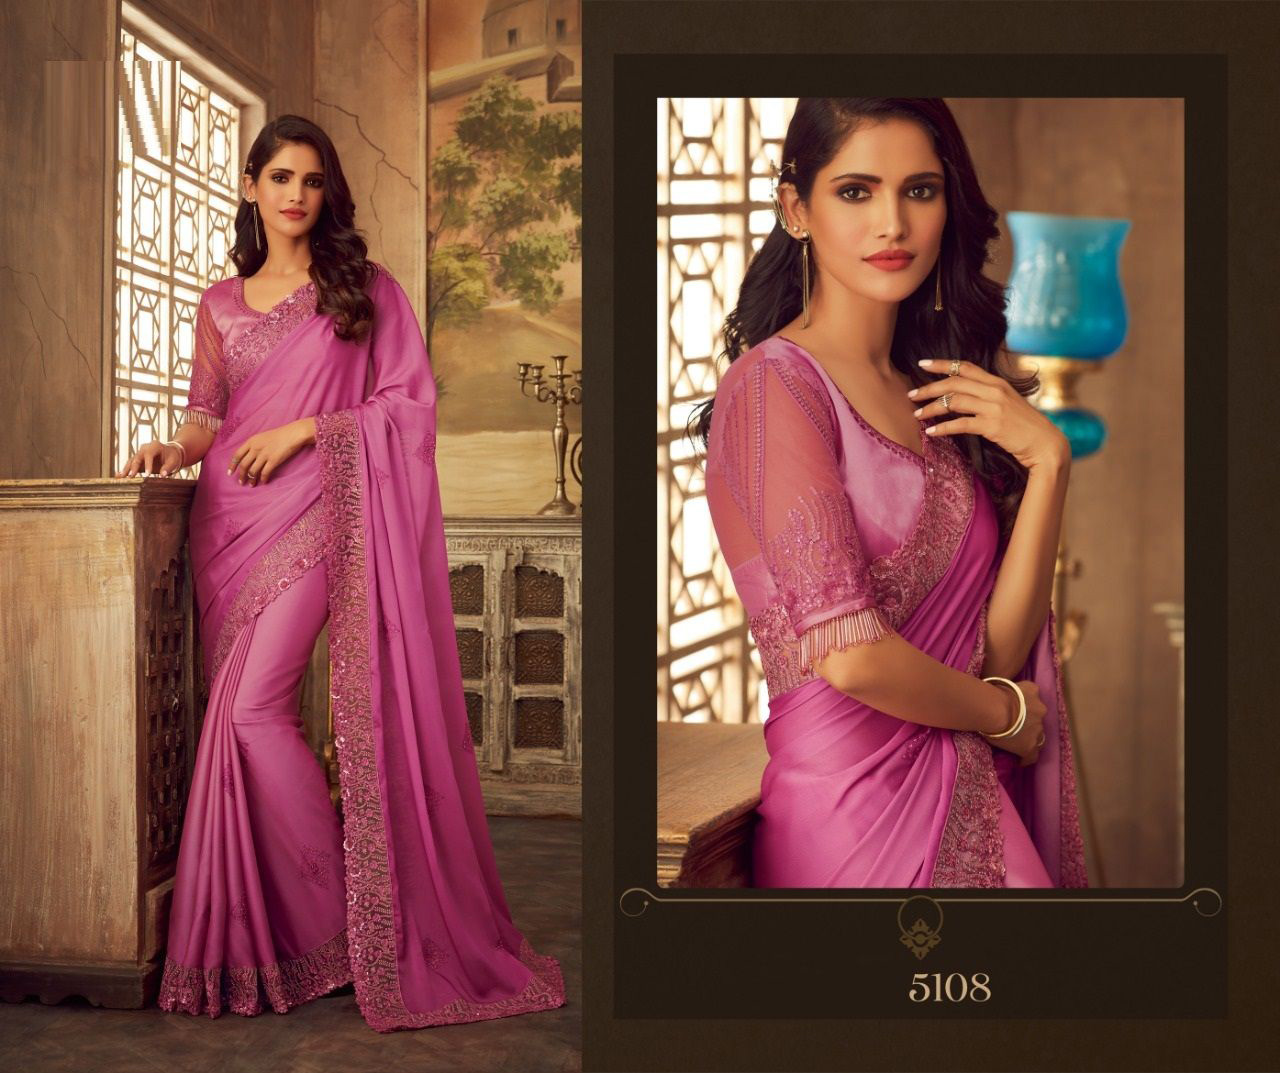 PARTY WEAR INDIAN SILK SAREE - BT-SR-40328 - $119.99